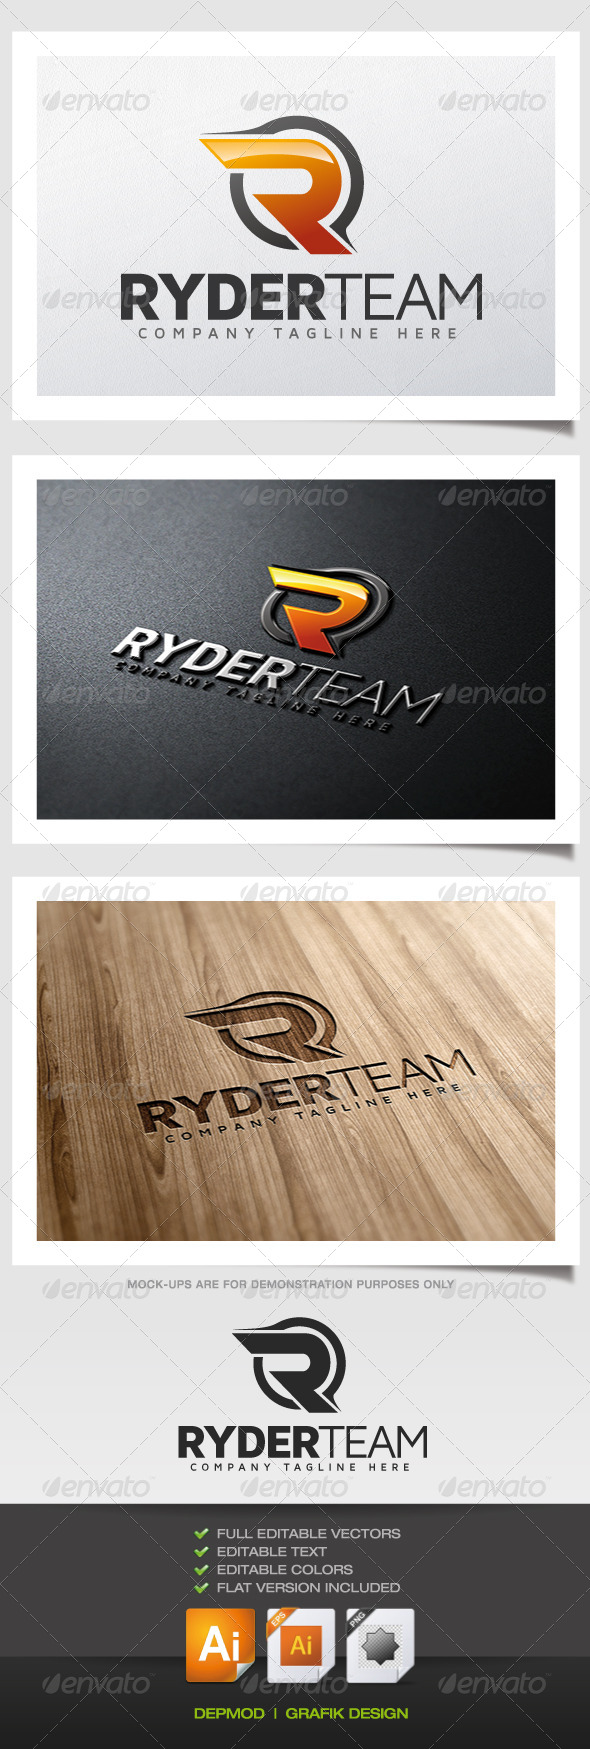 GraphicRiver Ryder Team Logo 5622612